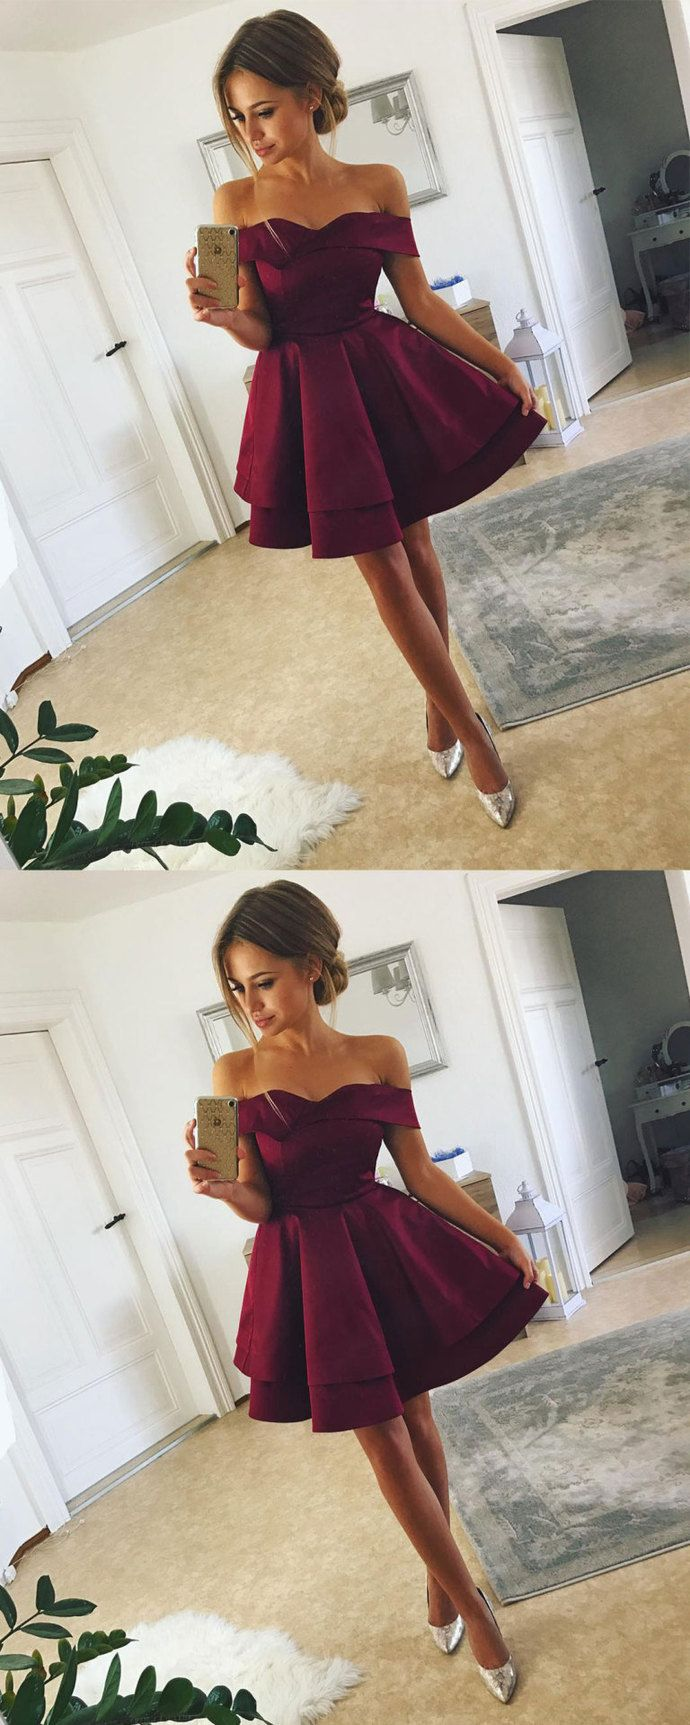 aee62a077 Simple A-Line Off-the-Shoulder Short Above-knee Burgundy Satin Homecoming  Dress by Smile, $127.32 USD